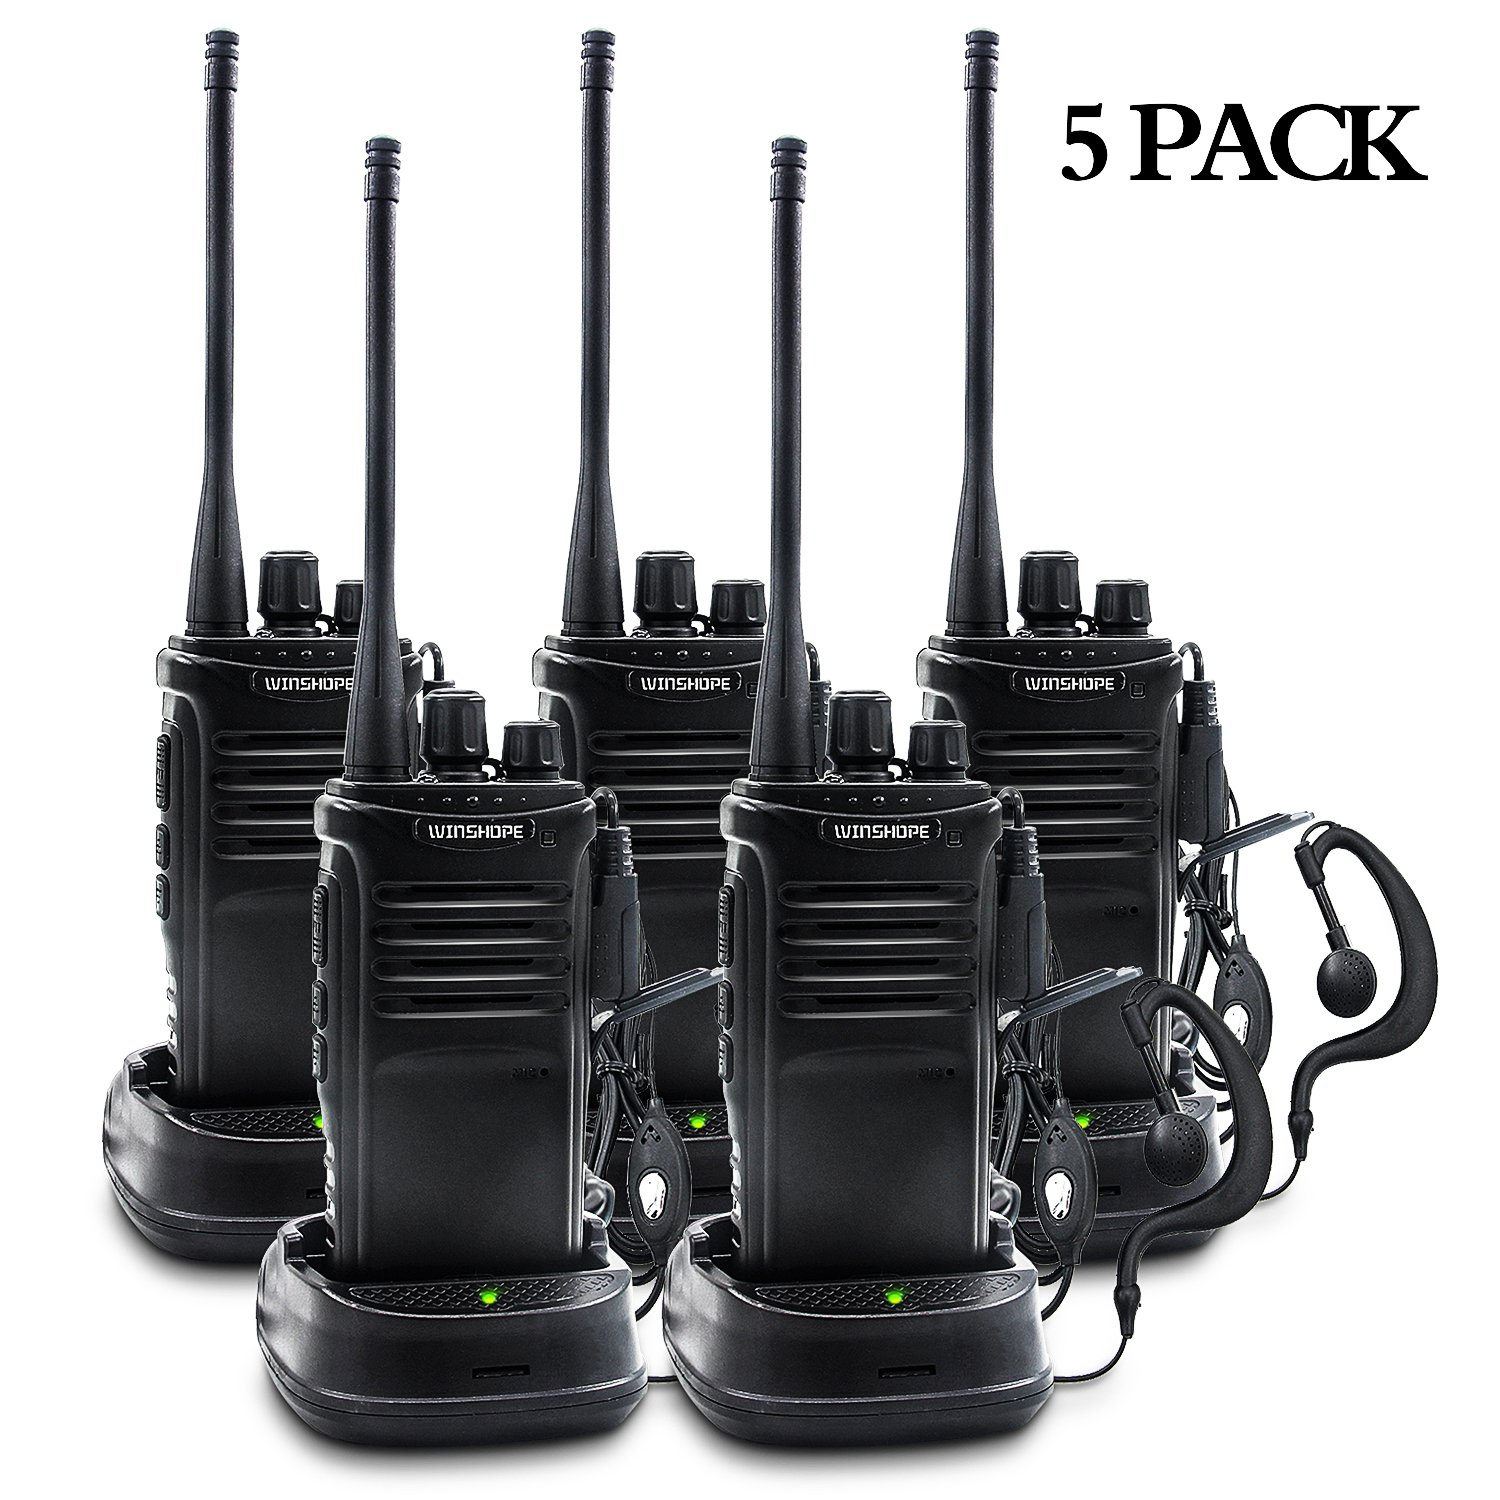 Winshope Walkie Talkies Long Range With Earpiece Mic Handheld VHF/UHF Radio Rechargeable 5W Two Way Radios 16 Channels Comunicacion Two Way Radio With Antenna Microphone Headsets(5 Pack)